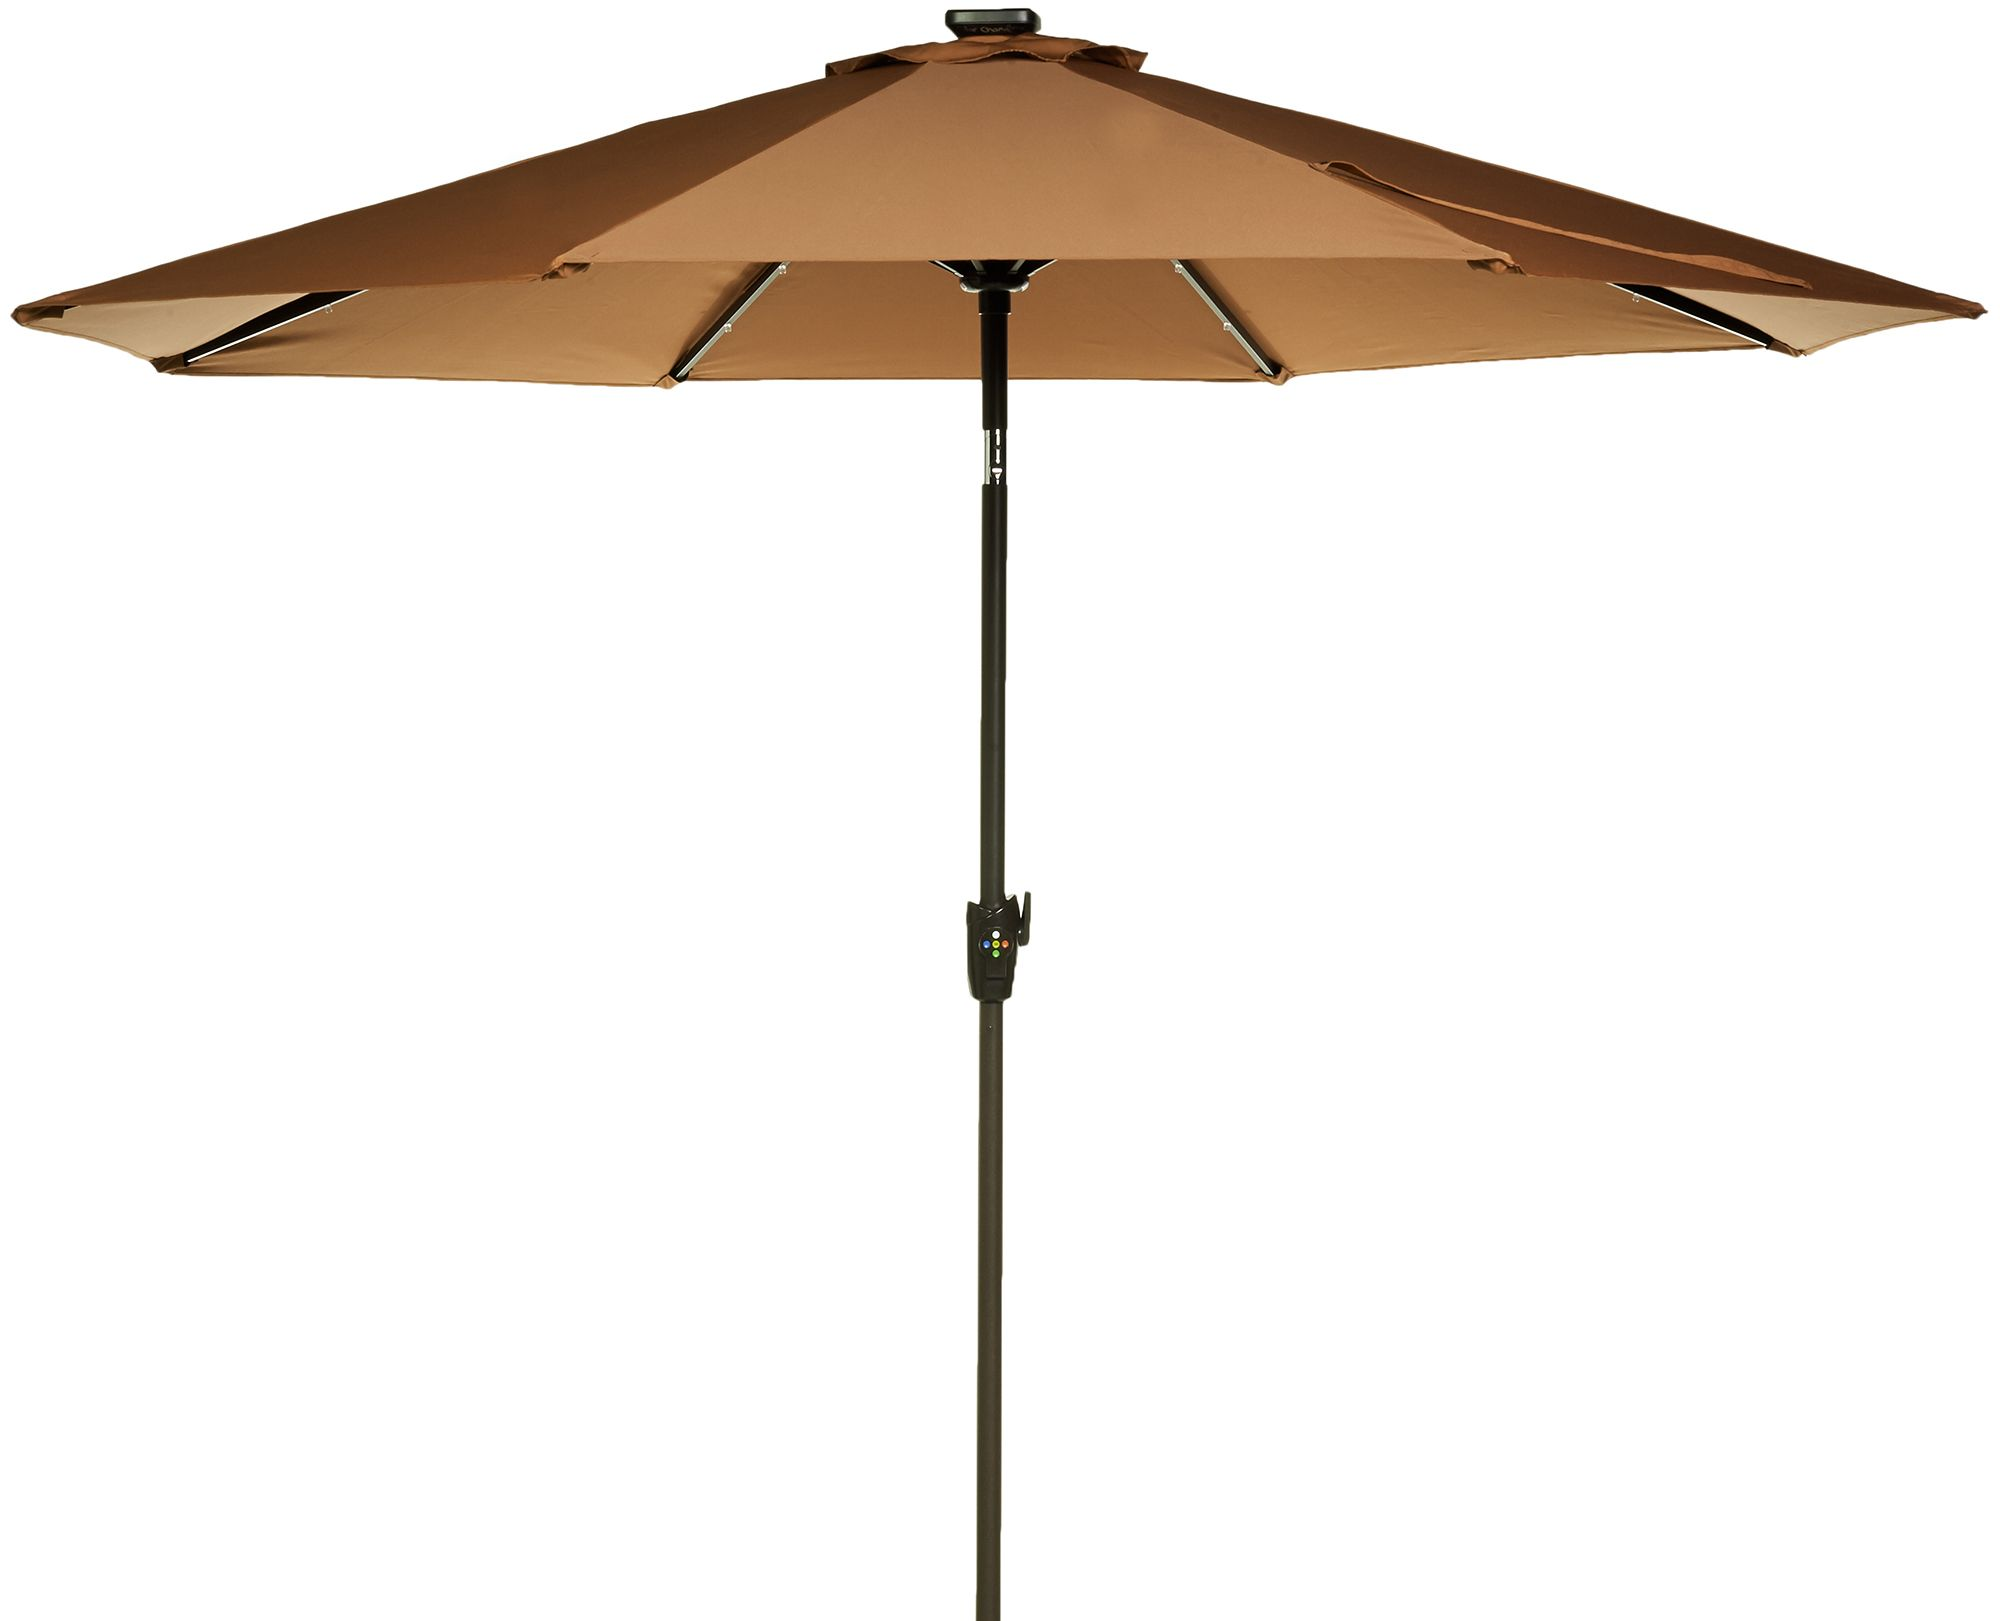 ATLeisure 9' Solar Patio Umbrella With White & Color